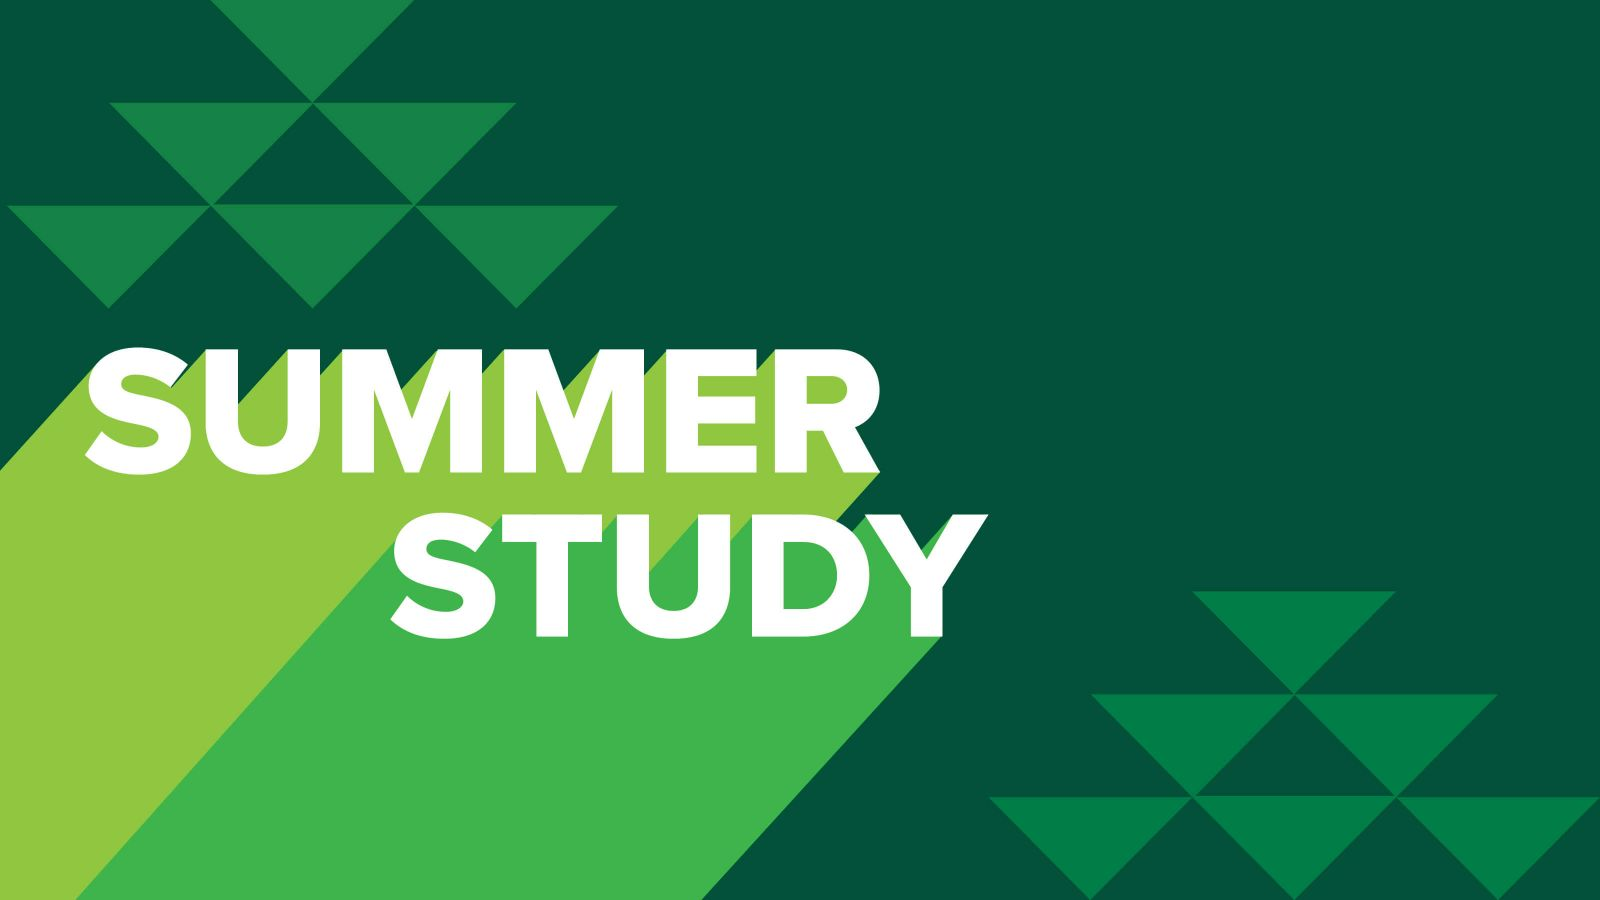 Abstract light and dark green triangle background with the words 'Summer study'.